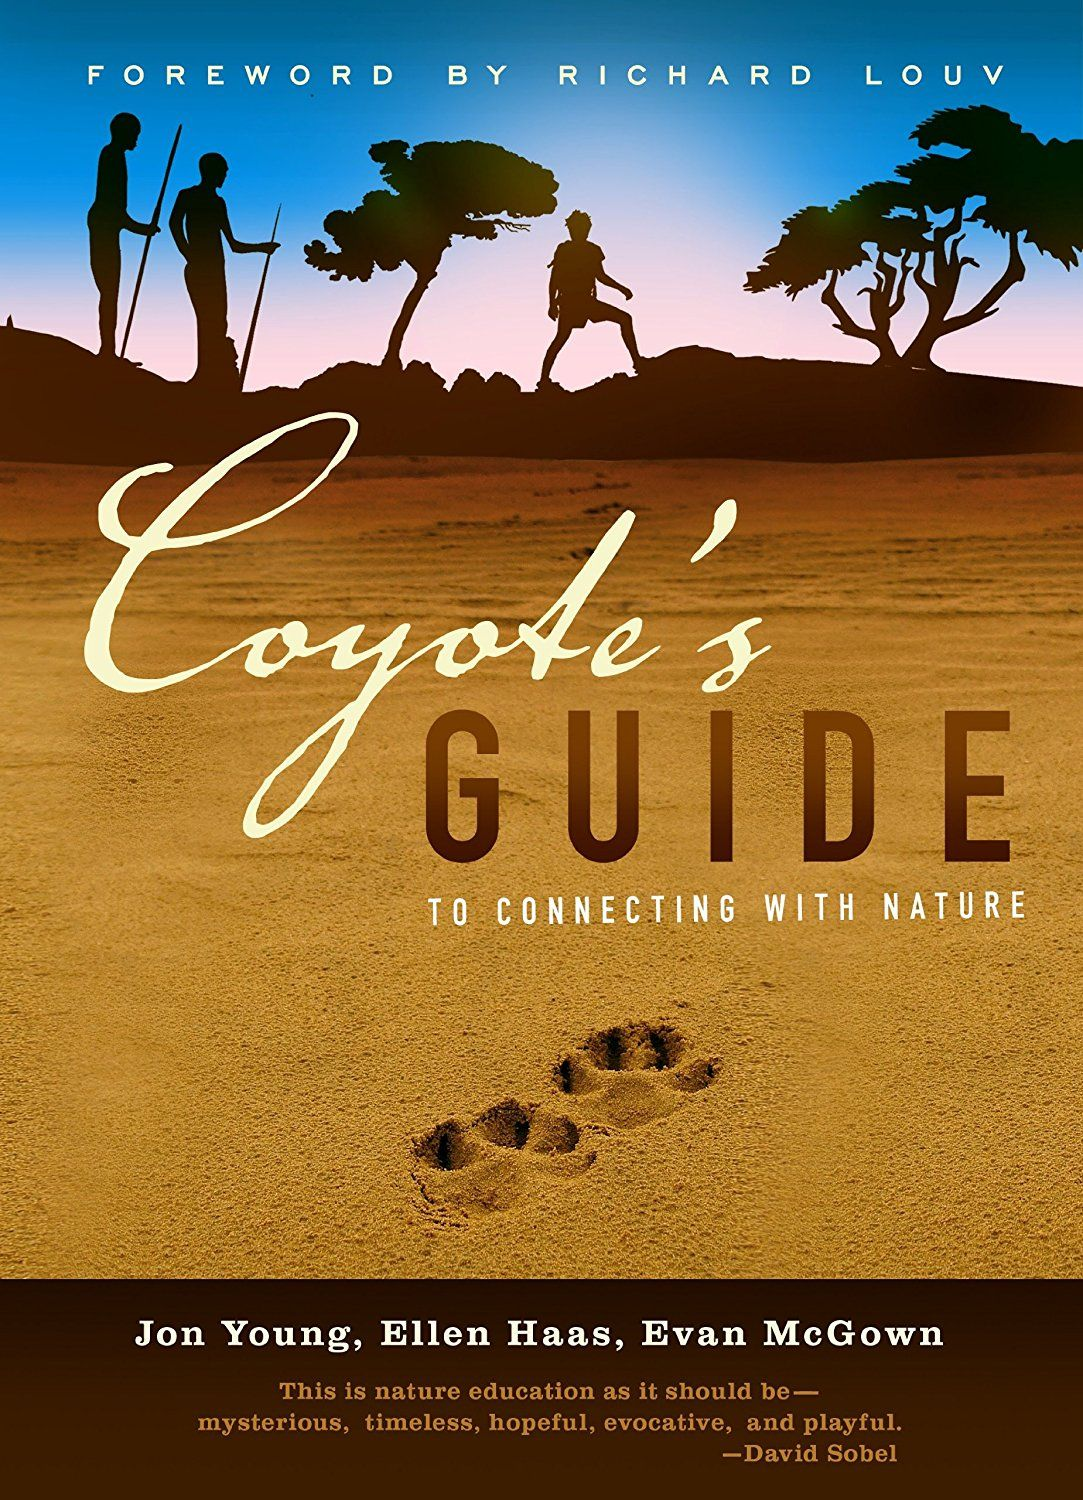 Coyote S Guide To Connecting With Nature Nature Education Richard Louv Connection